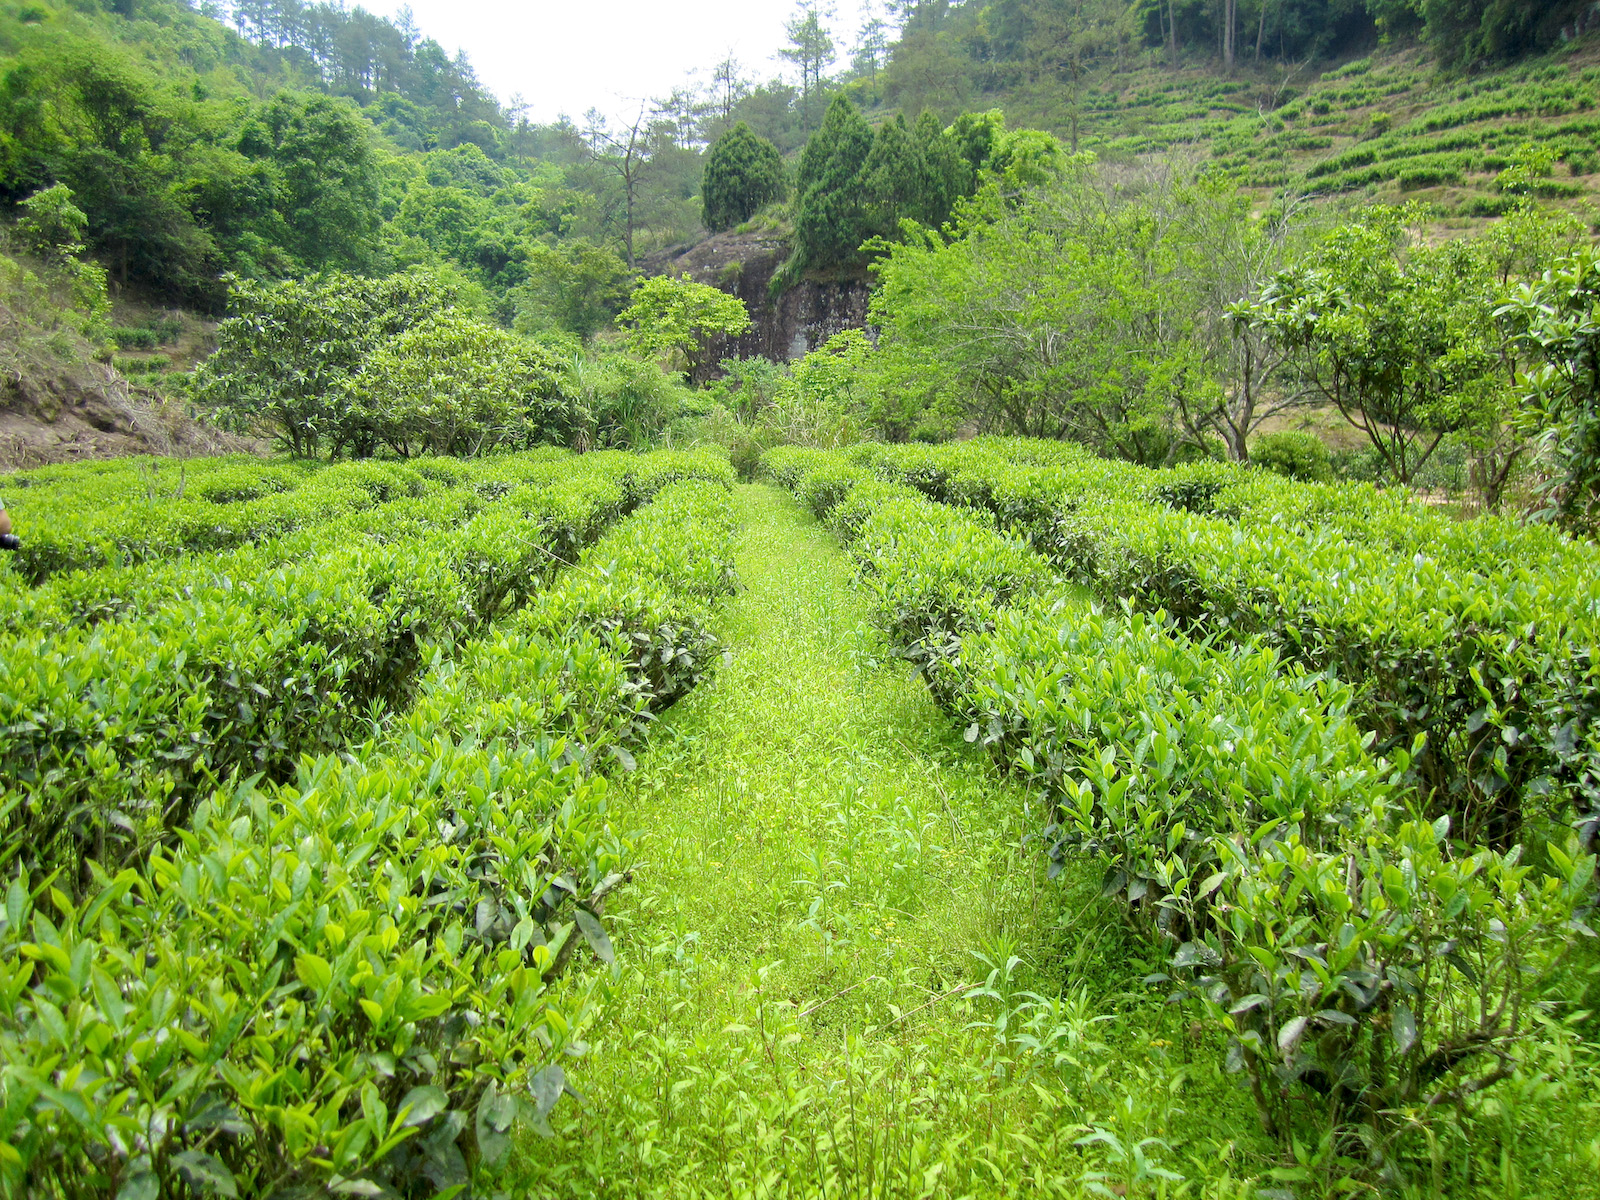 View looking straight down the grassy space between rows of green Junshan Yinzhen tea bushes in a small valley surrounded by forest trees.